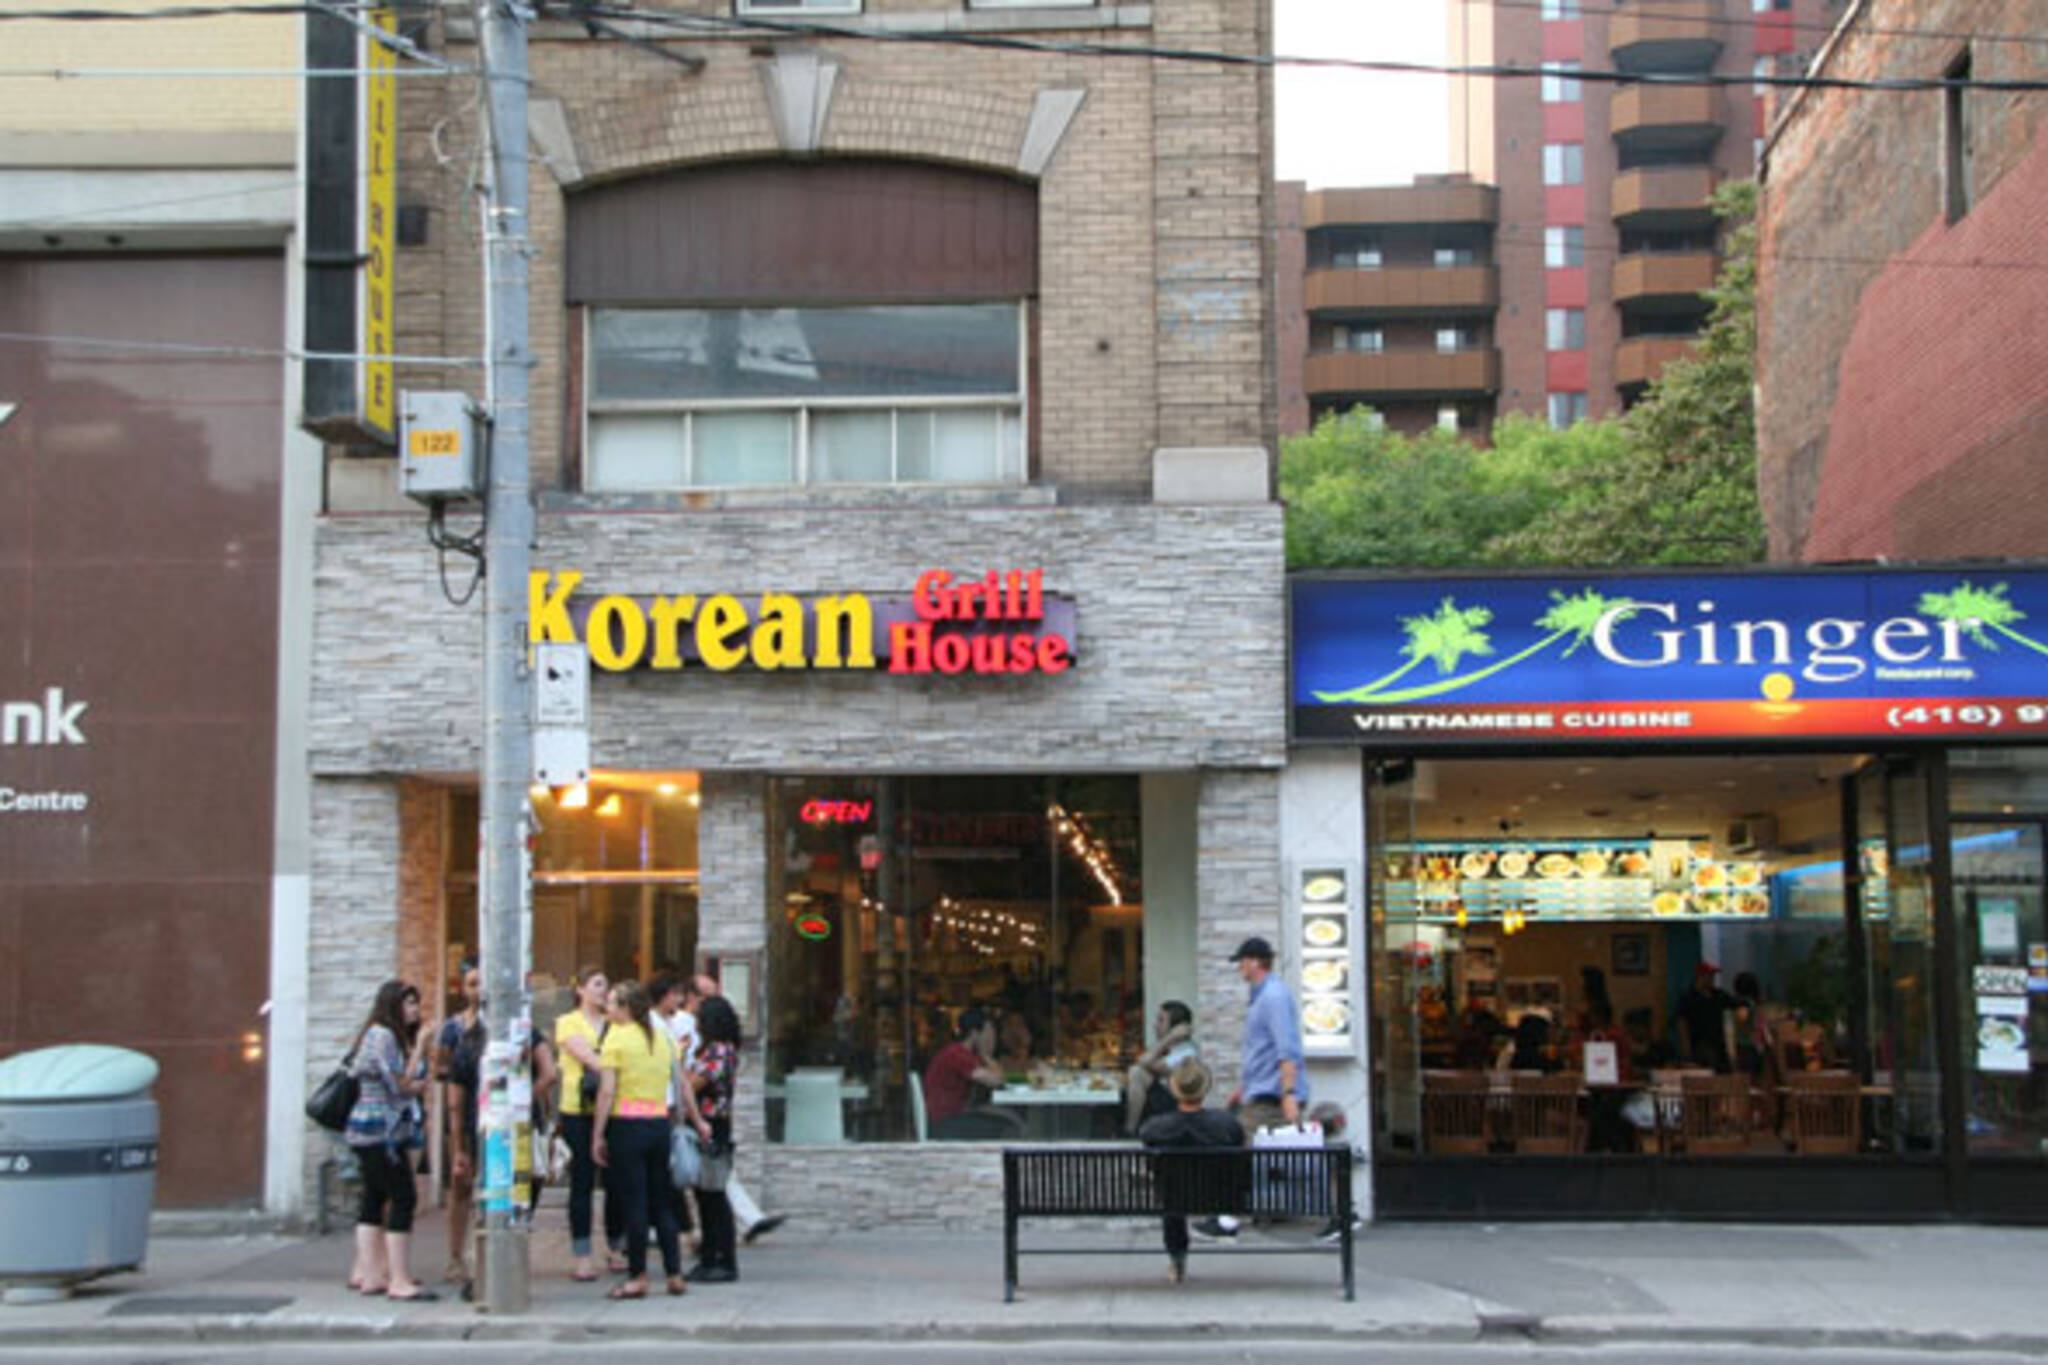 Korean Grillhouse